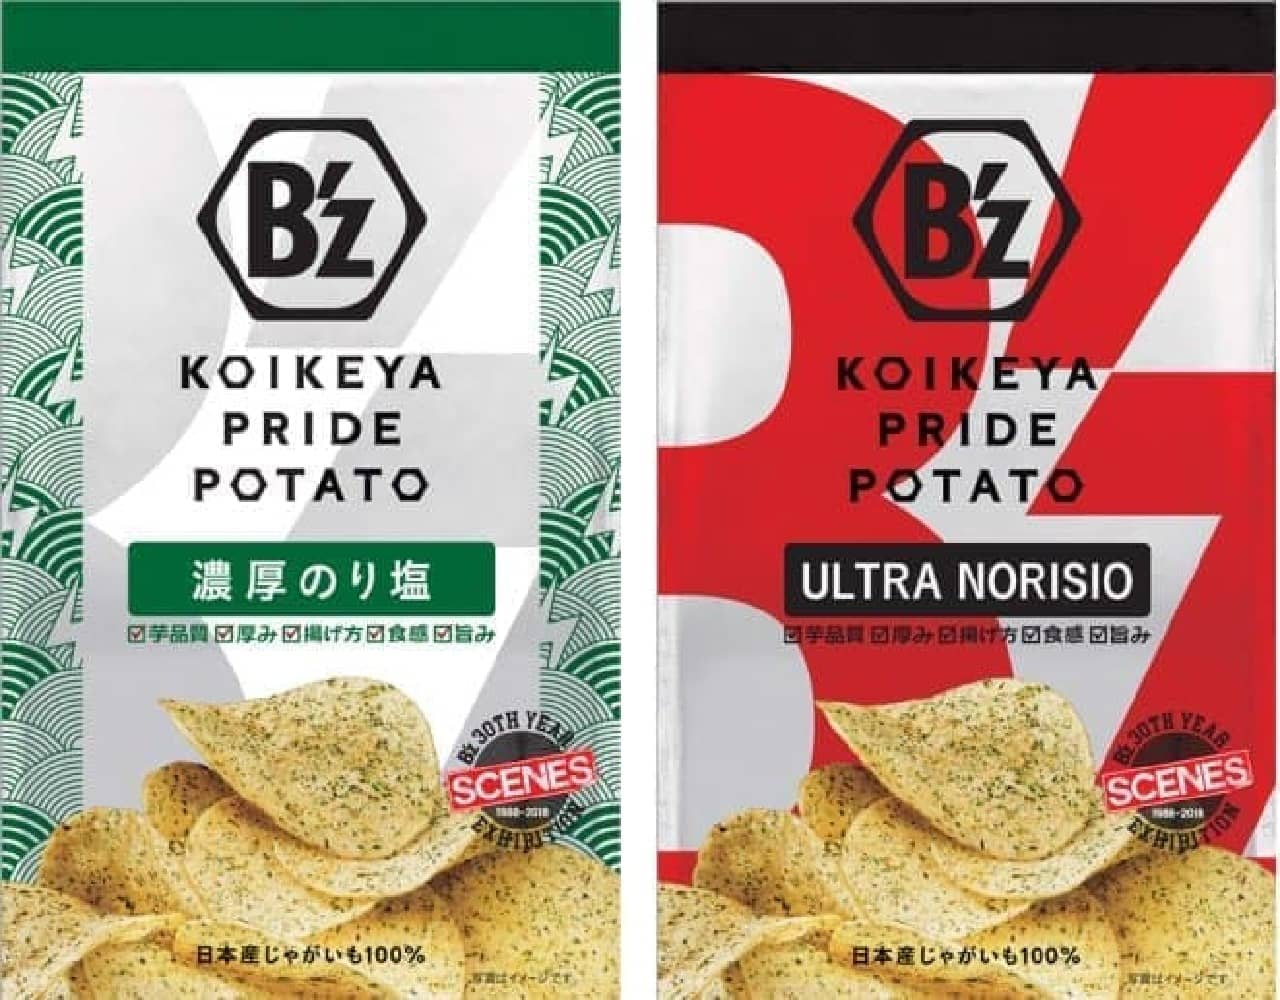 湖池屋「B'z PRIDE POTATO 濃厚のり塩」と「B'z PRIDE POTATO ULTRA NORISIO」